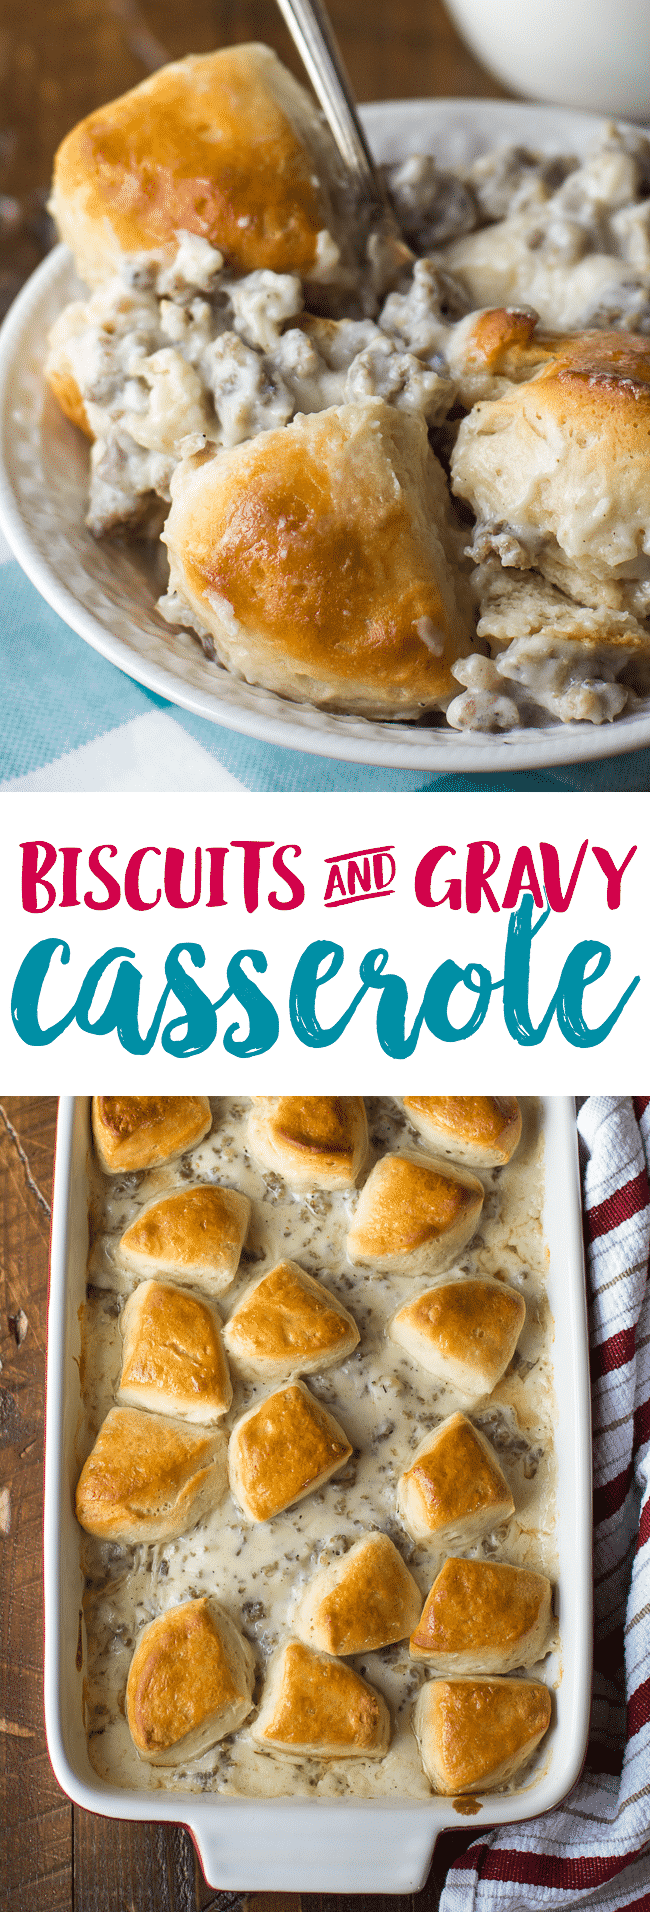 Biscuits and Gravy Casserole Recipe | Sausage Gravy Casserole | Breakfast Casserole | Easy Breakfast Casserole